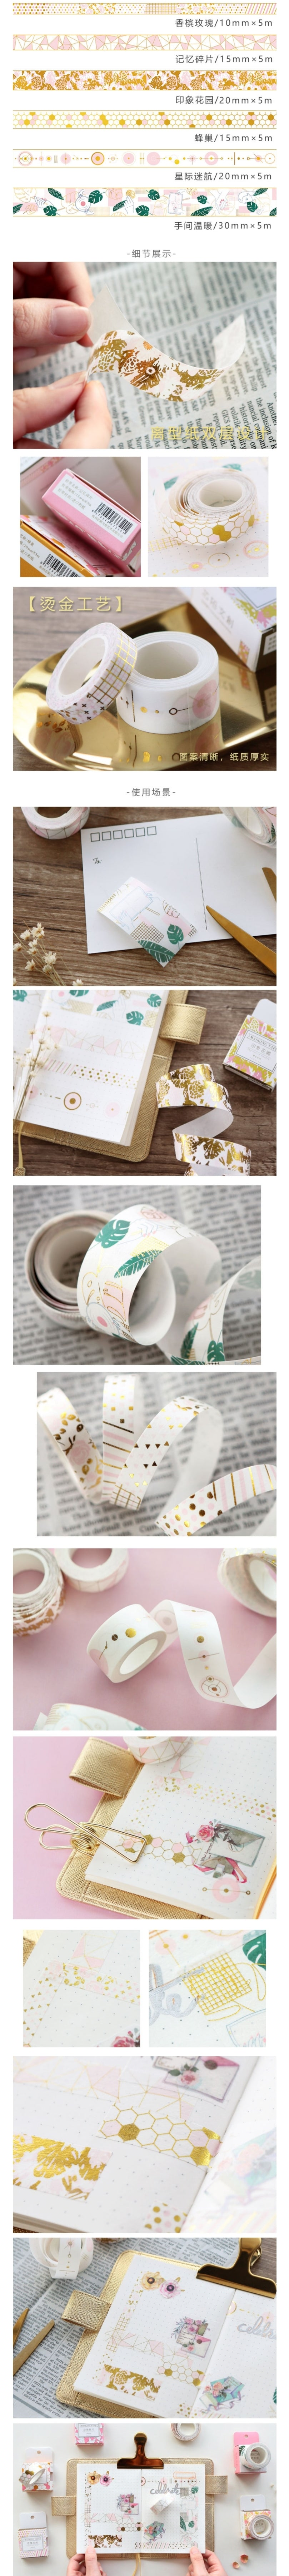 Gilded Pink Washi Tapes - Otrio Stationery